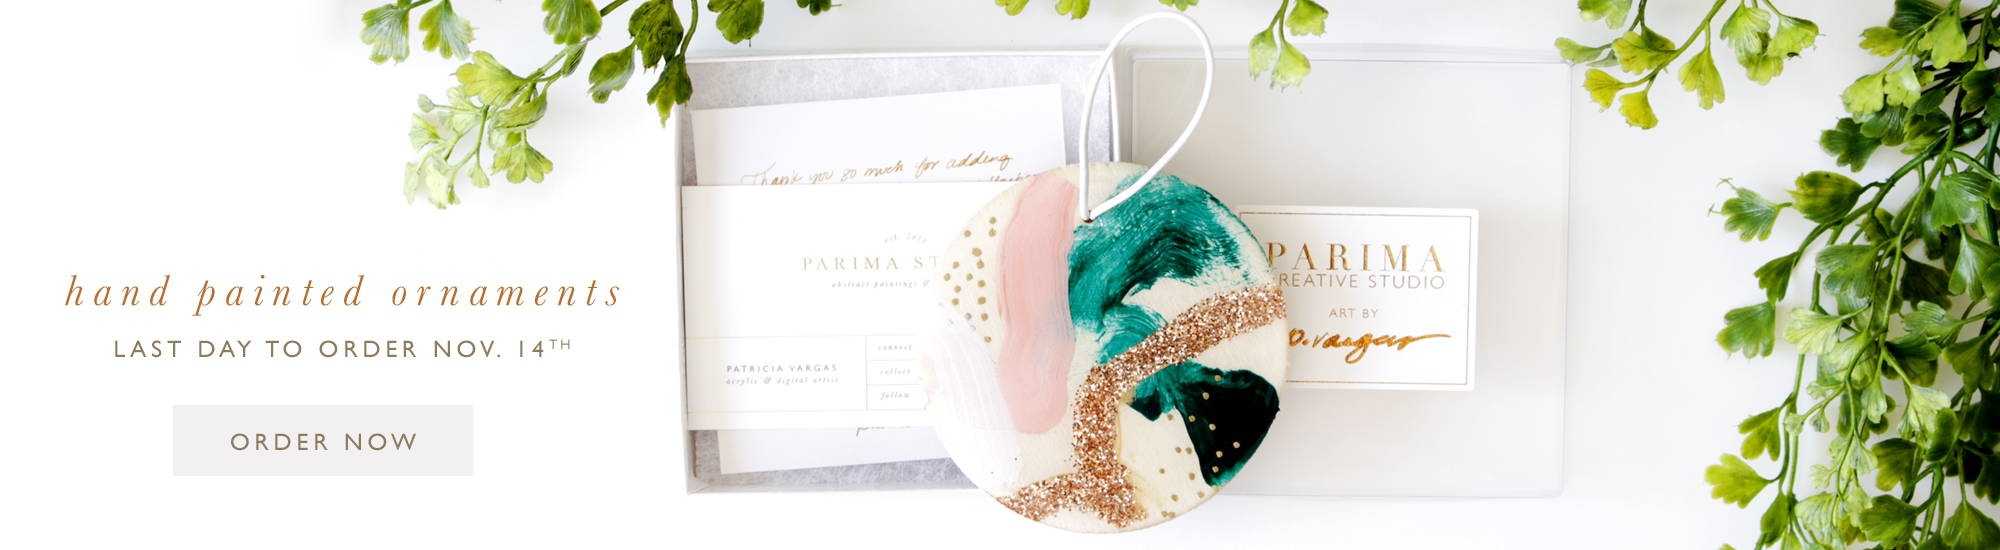 Hand painted ornaments by Parima Studio, abstract art